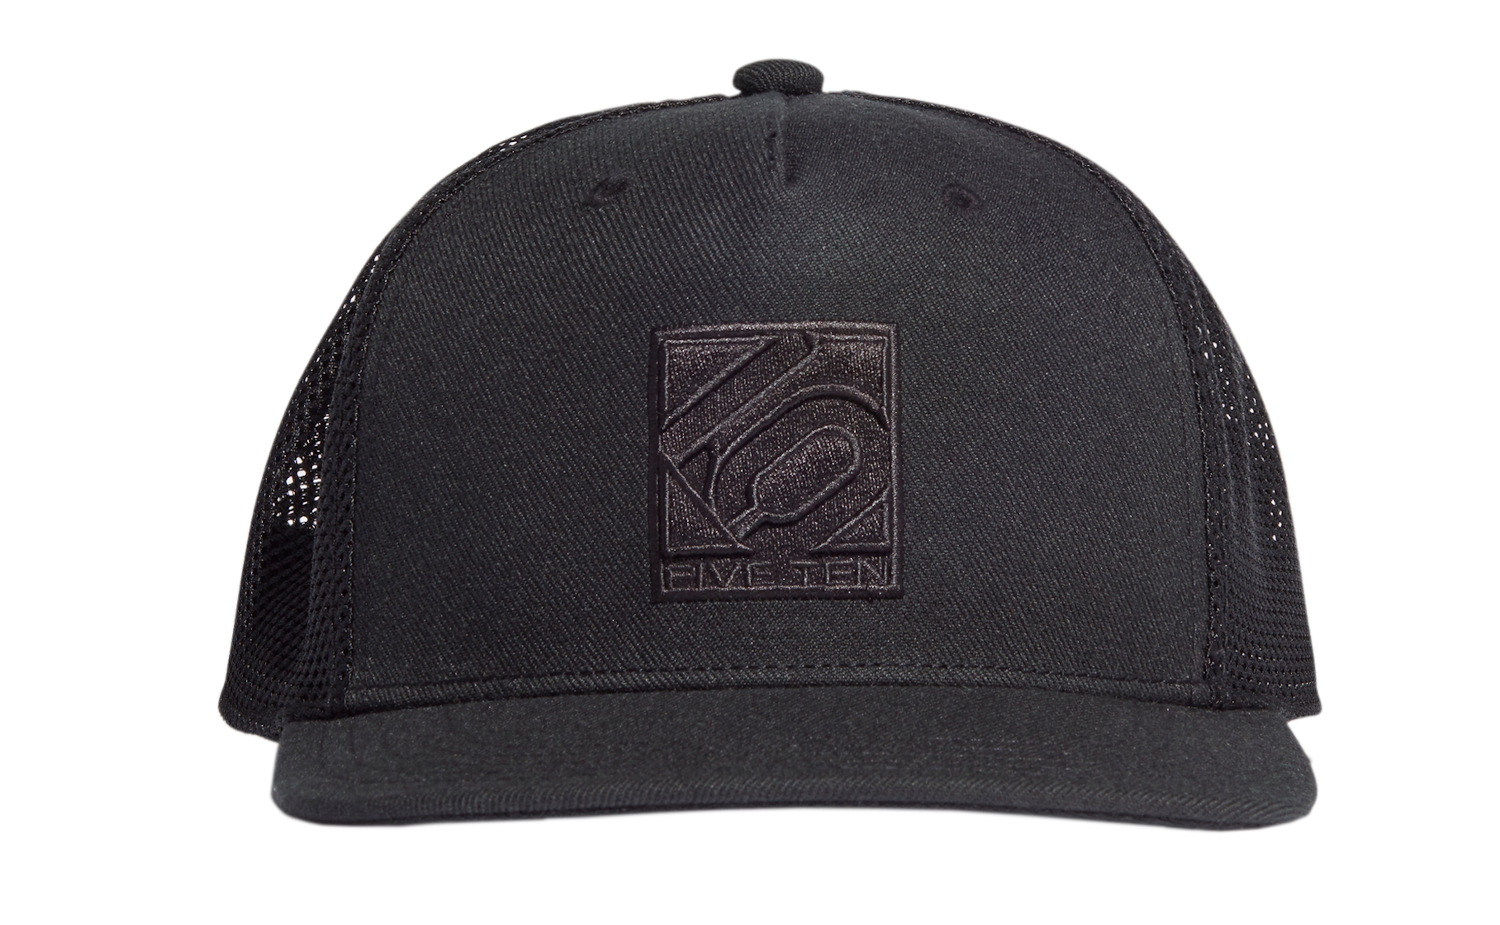 Five Ten Terrex H90 Trucker Cap Black